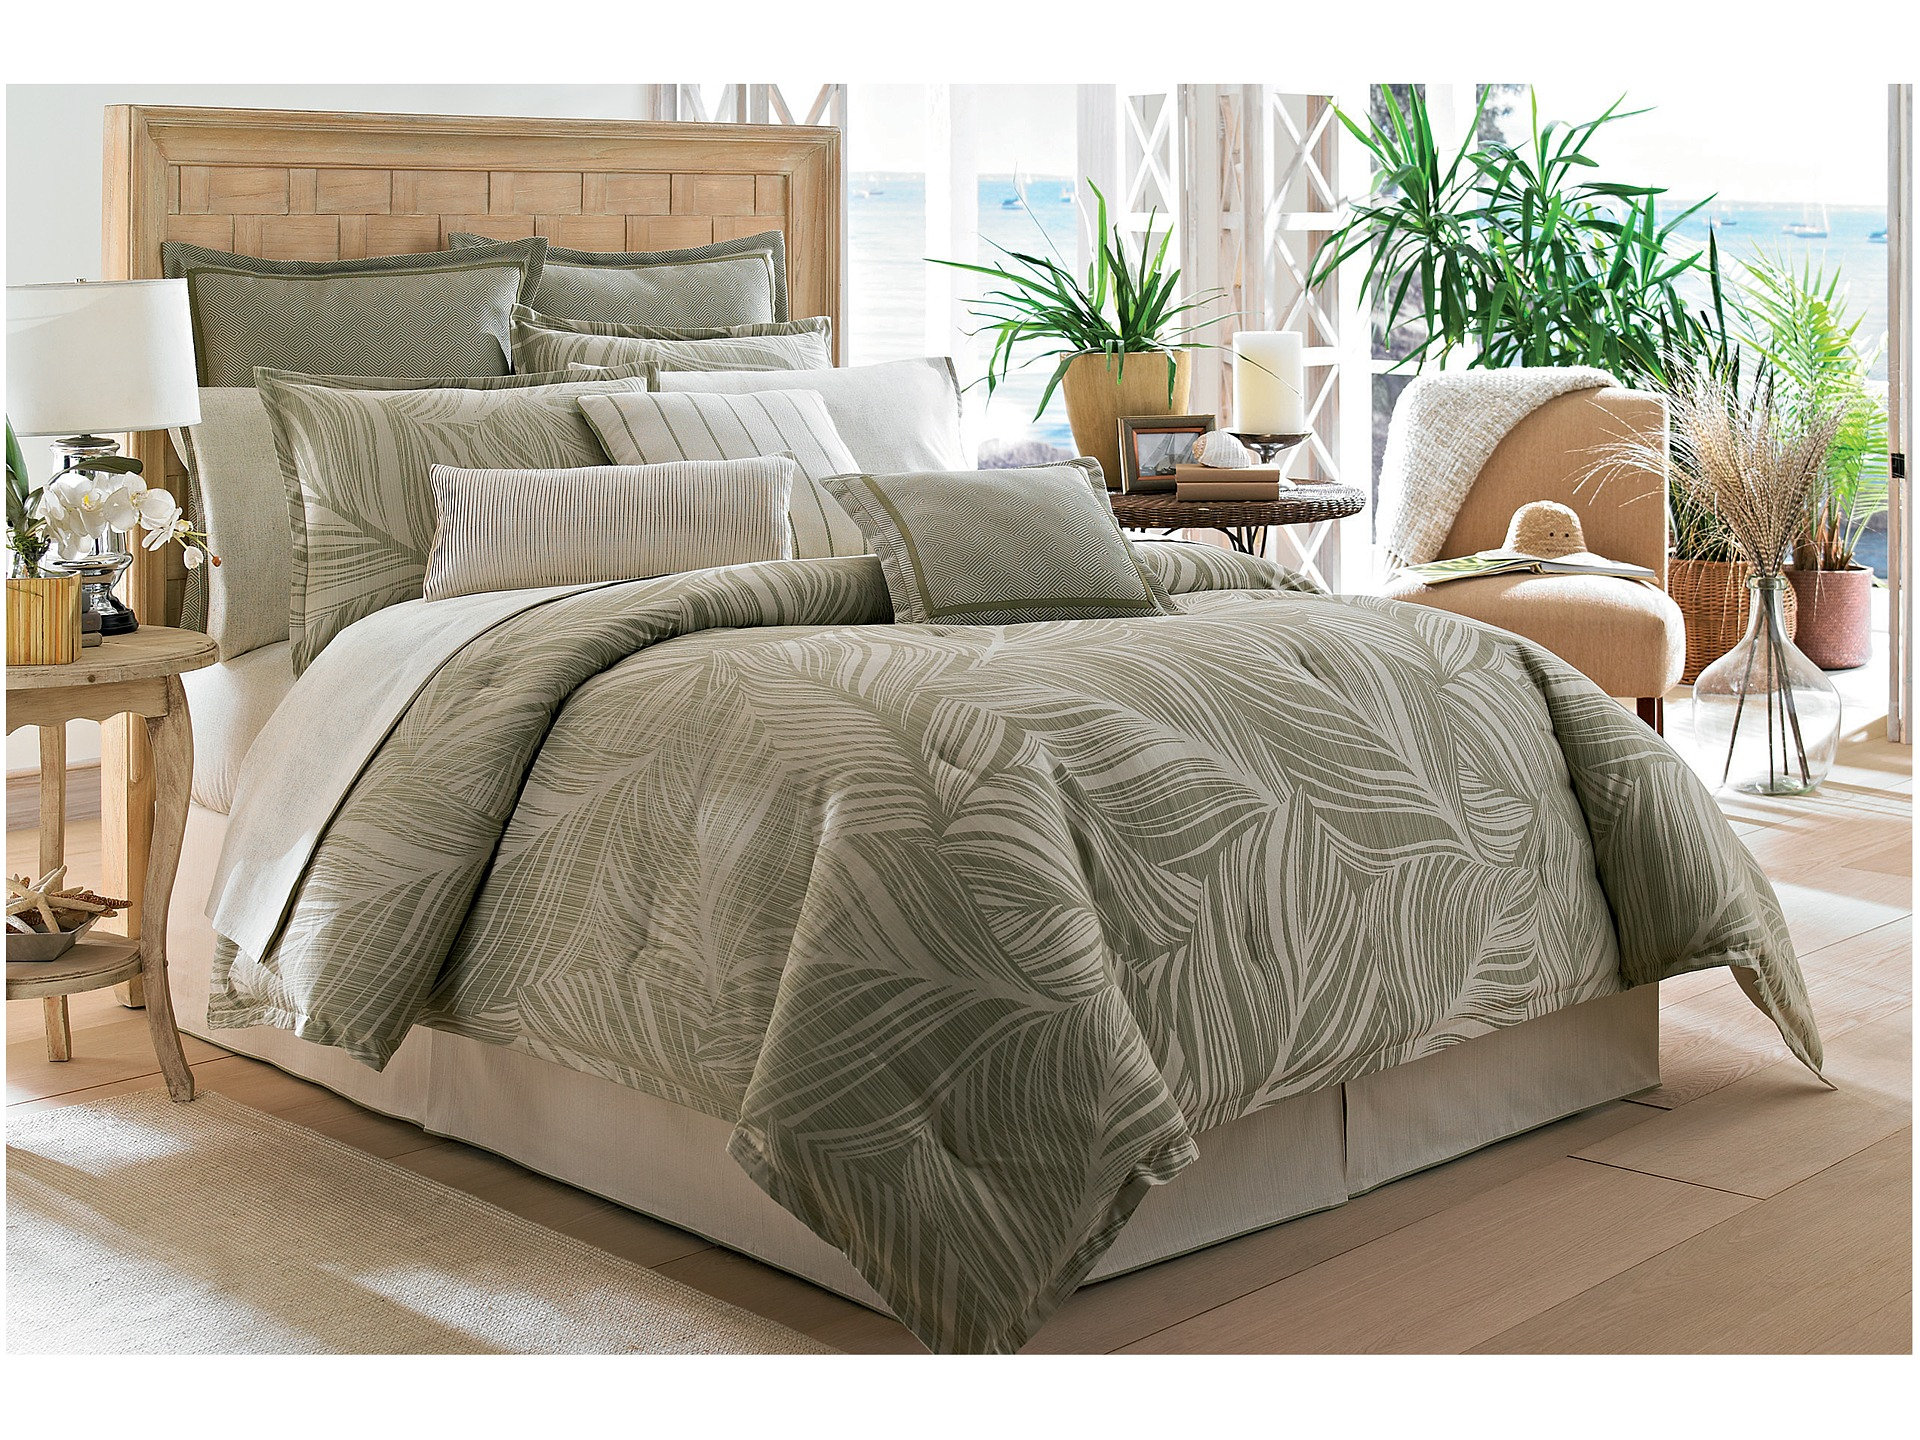 Tommy bahama montauk drifter comforter set california king Tommy bahama bedding